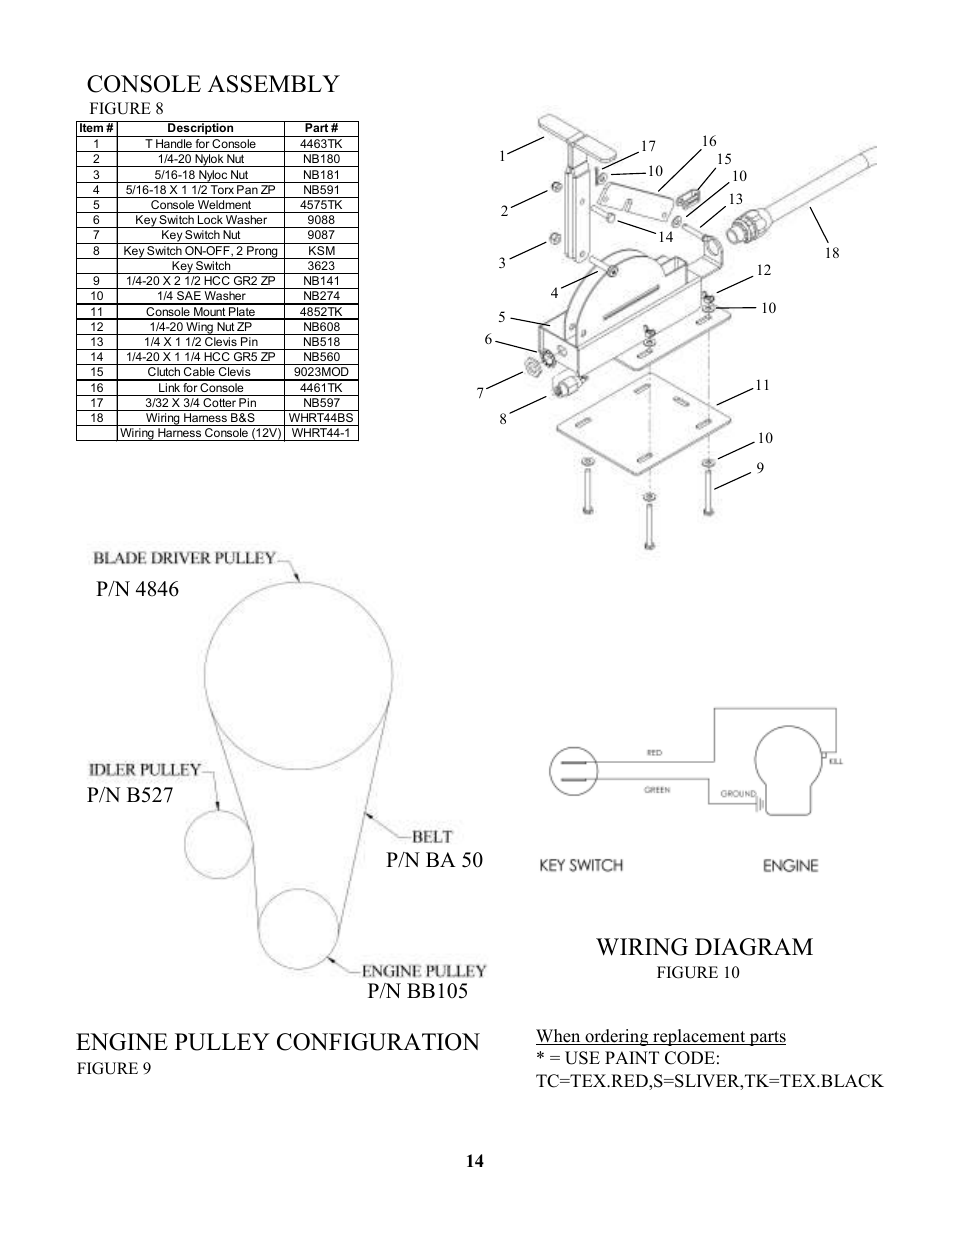 Console assembly, Wiring diagram, Engine pulley configuration | Swisher  RTB105441 User Manual | Page 14 / 16